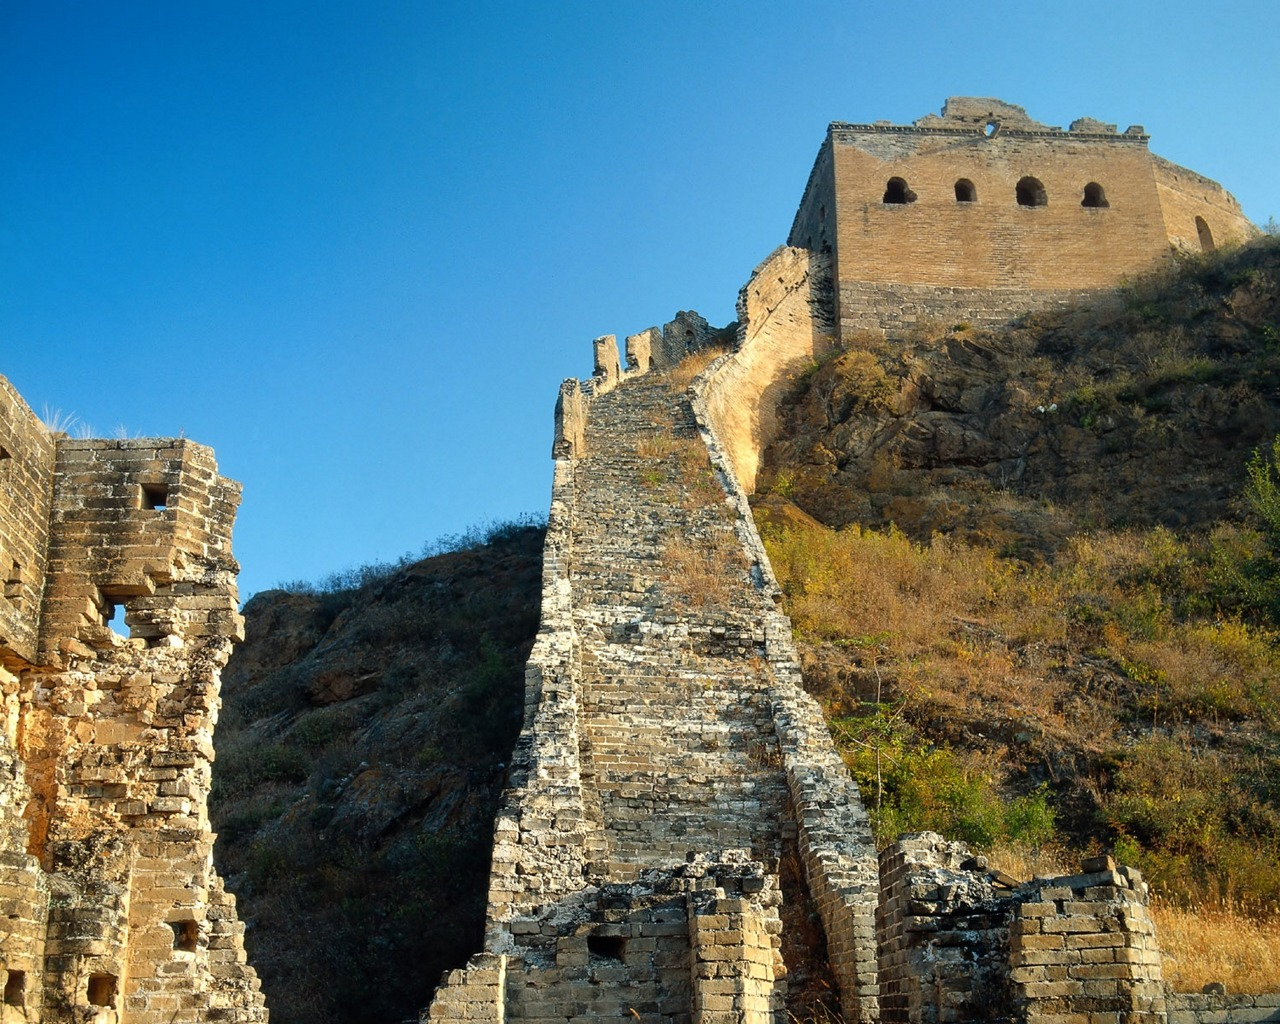 great wall china research papers The paper discusses the nature and development of the great wall of china under different cultures and dynasties the paper describes the construction of the great wall and looks at how the advancement of technology affected how it was built.